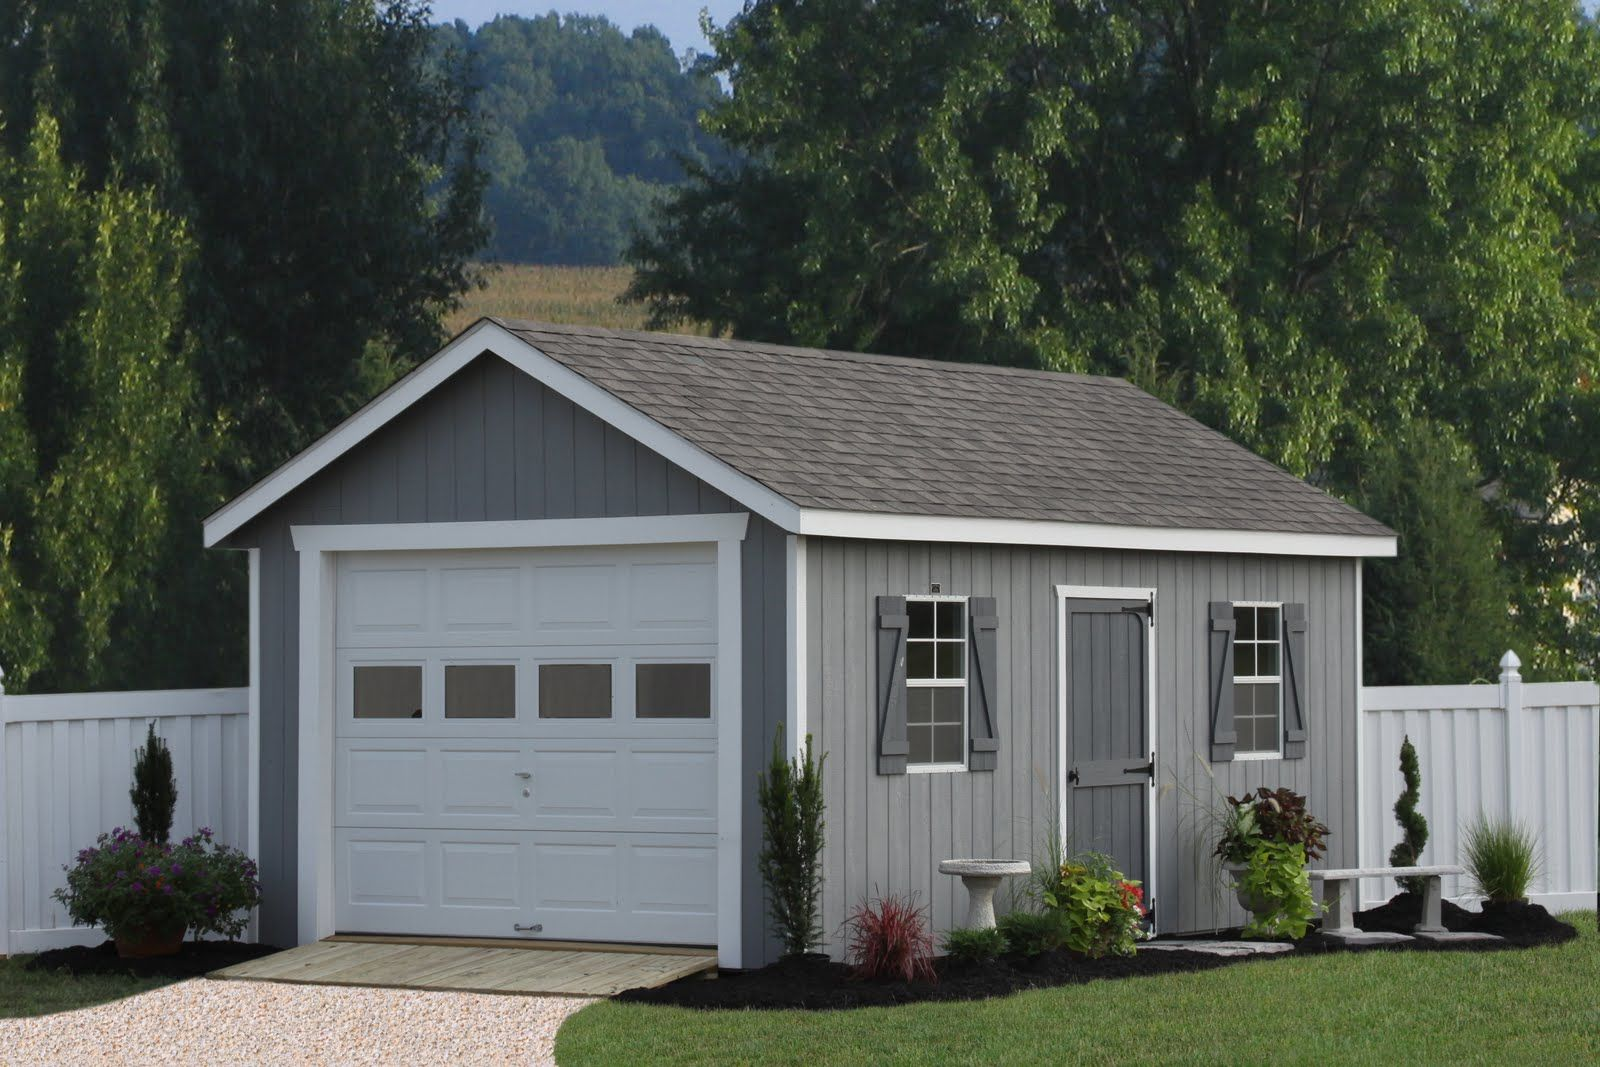 Add on garage plans 12x20 classic one car garage for Small house with garage